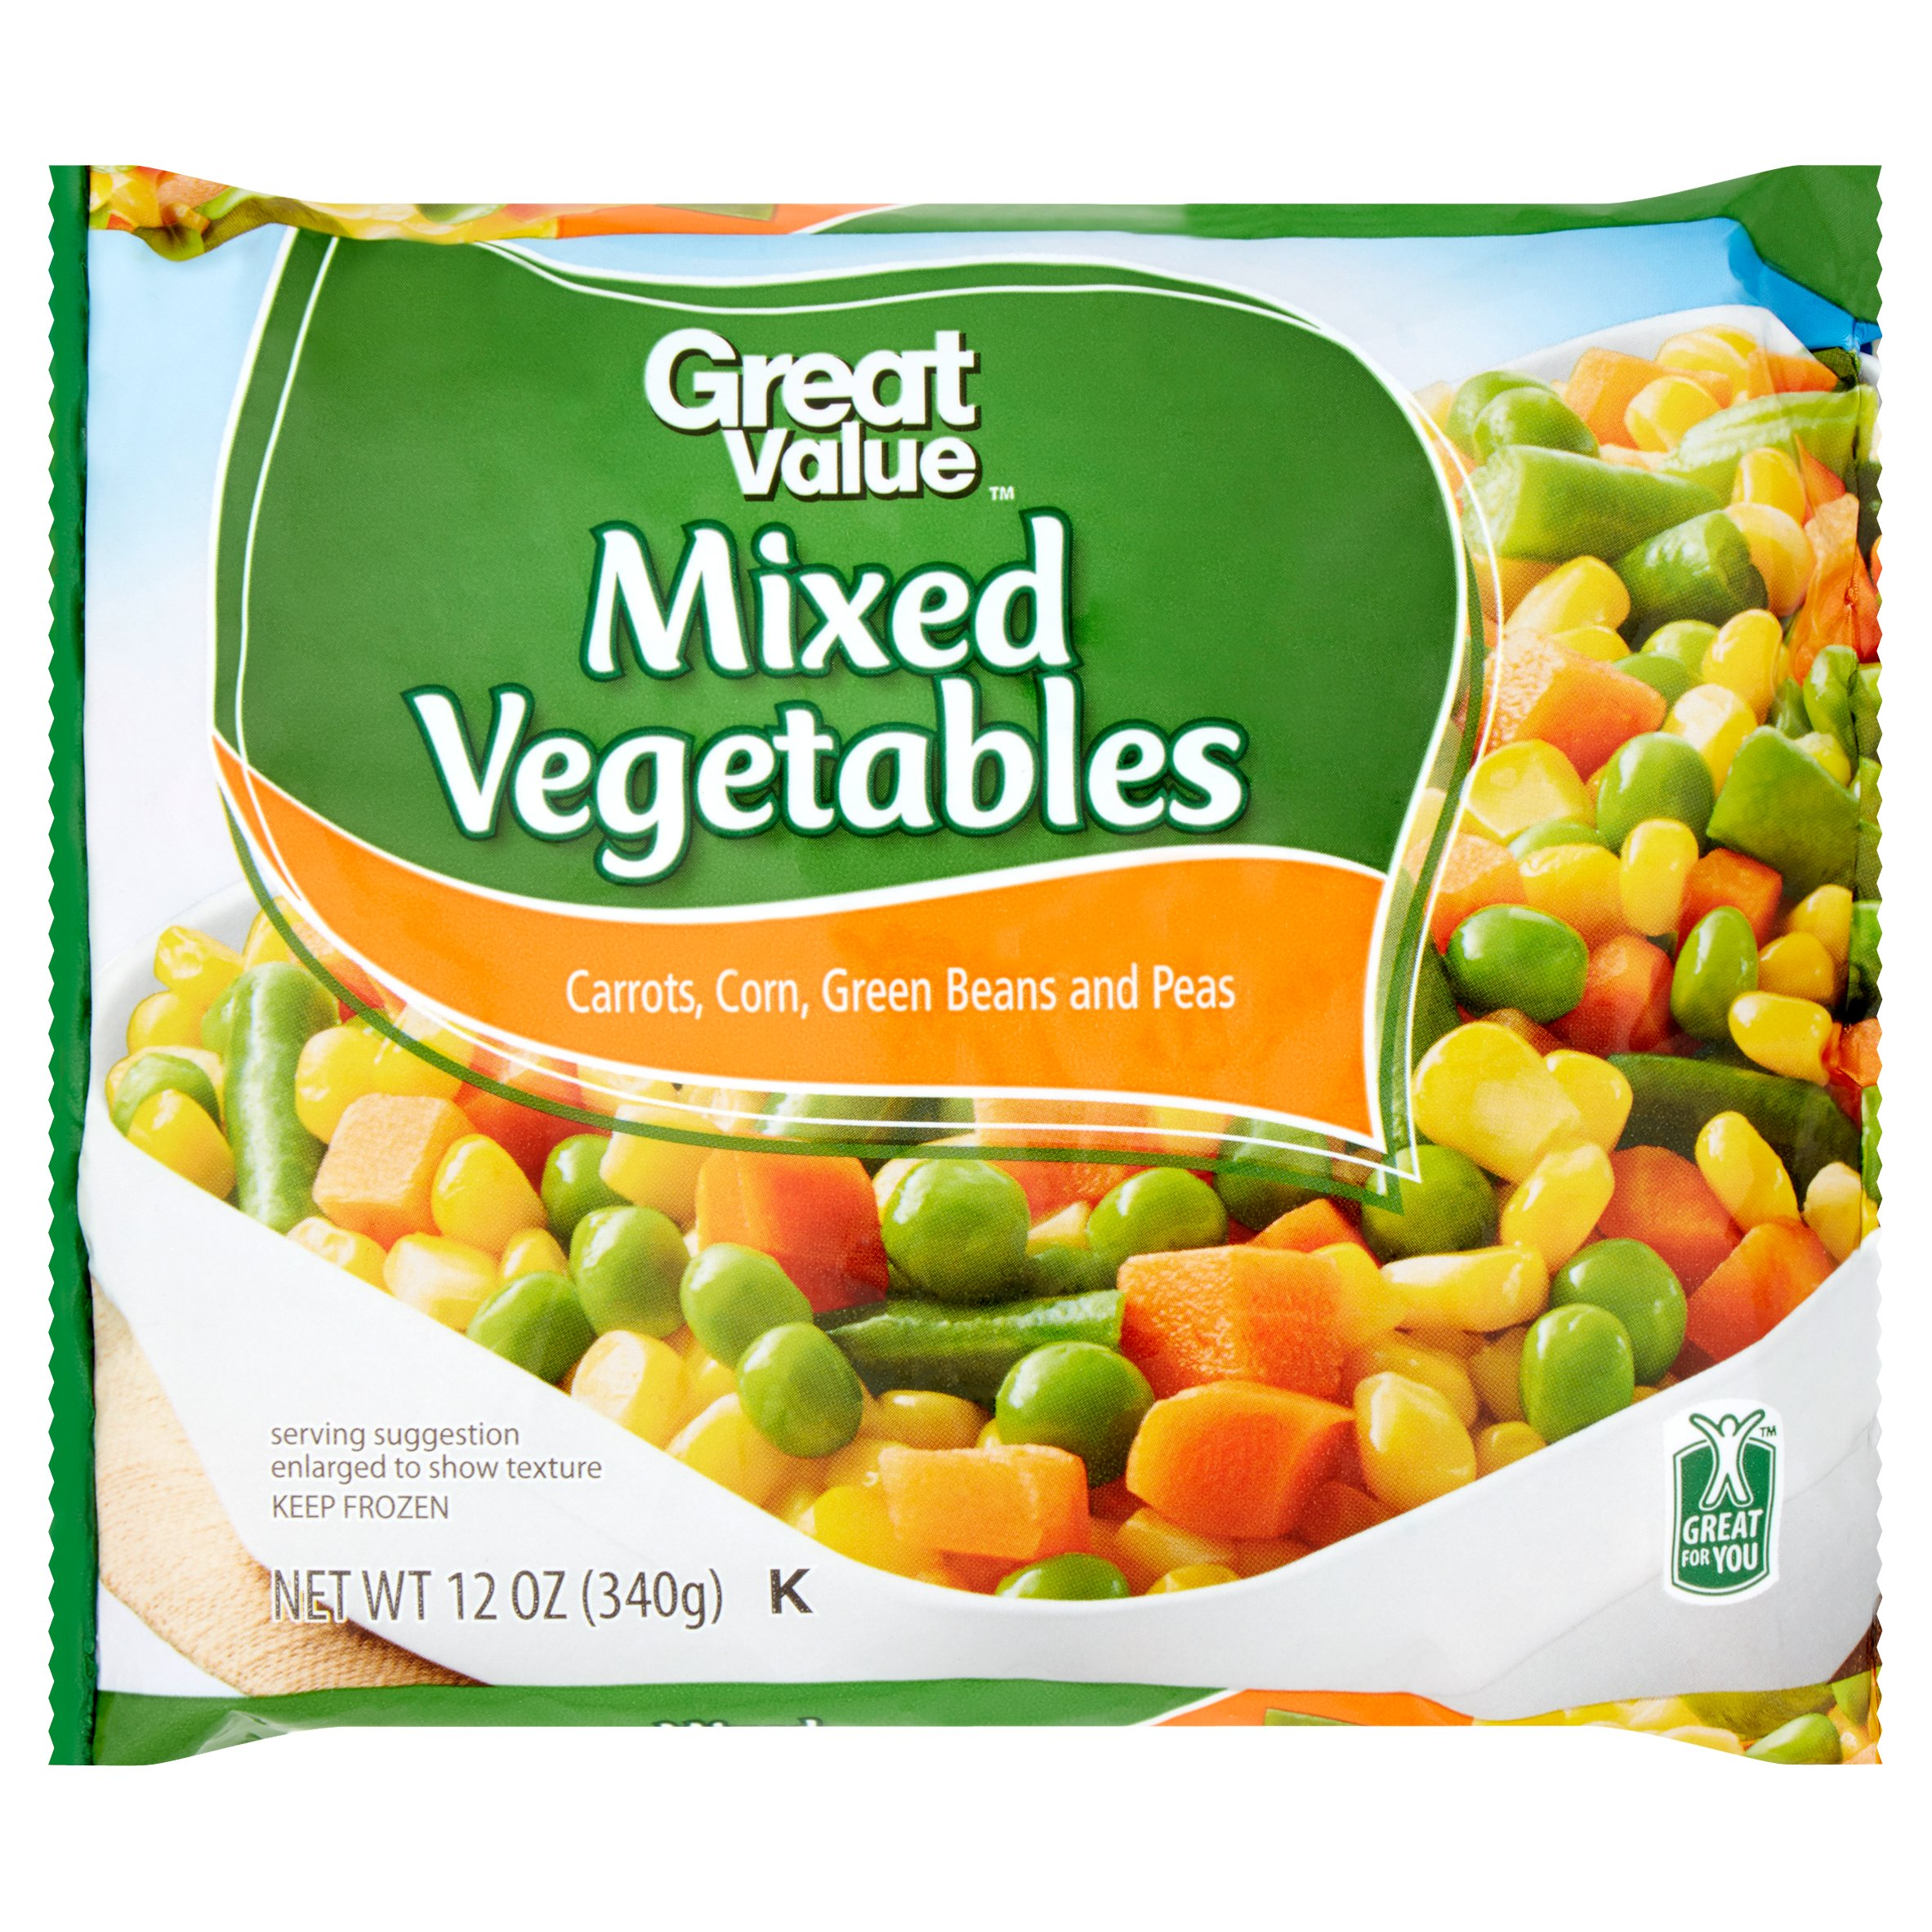 Great Value Mixed Vegetables, 12 oz by Wal-Mart Stores, Inc.